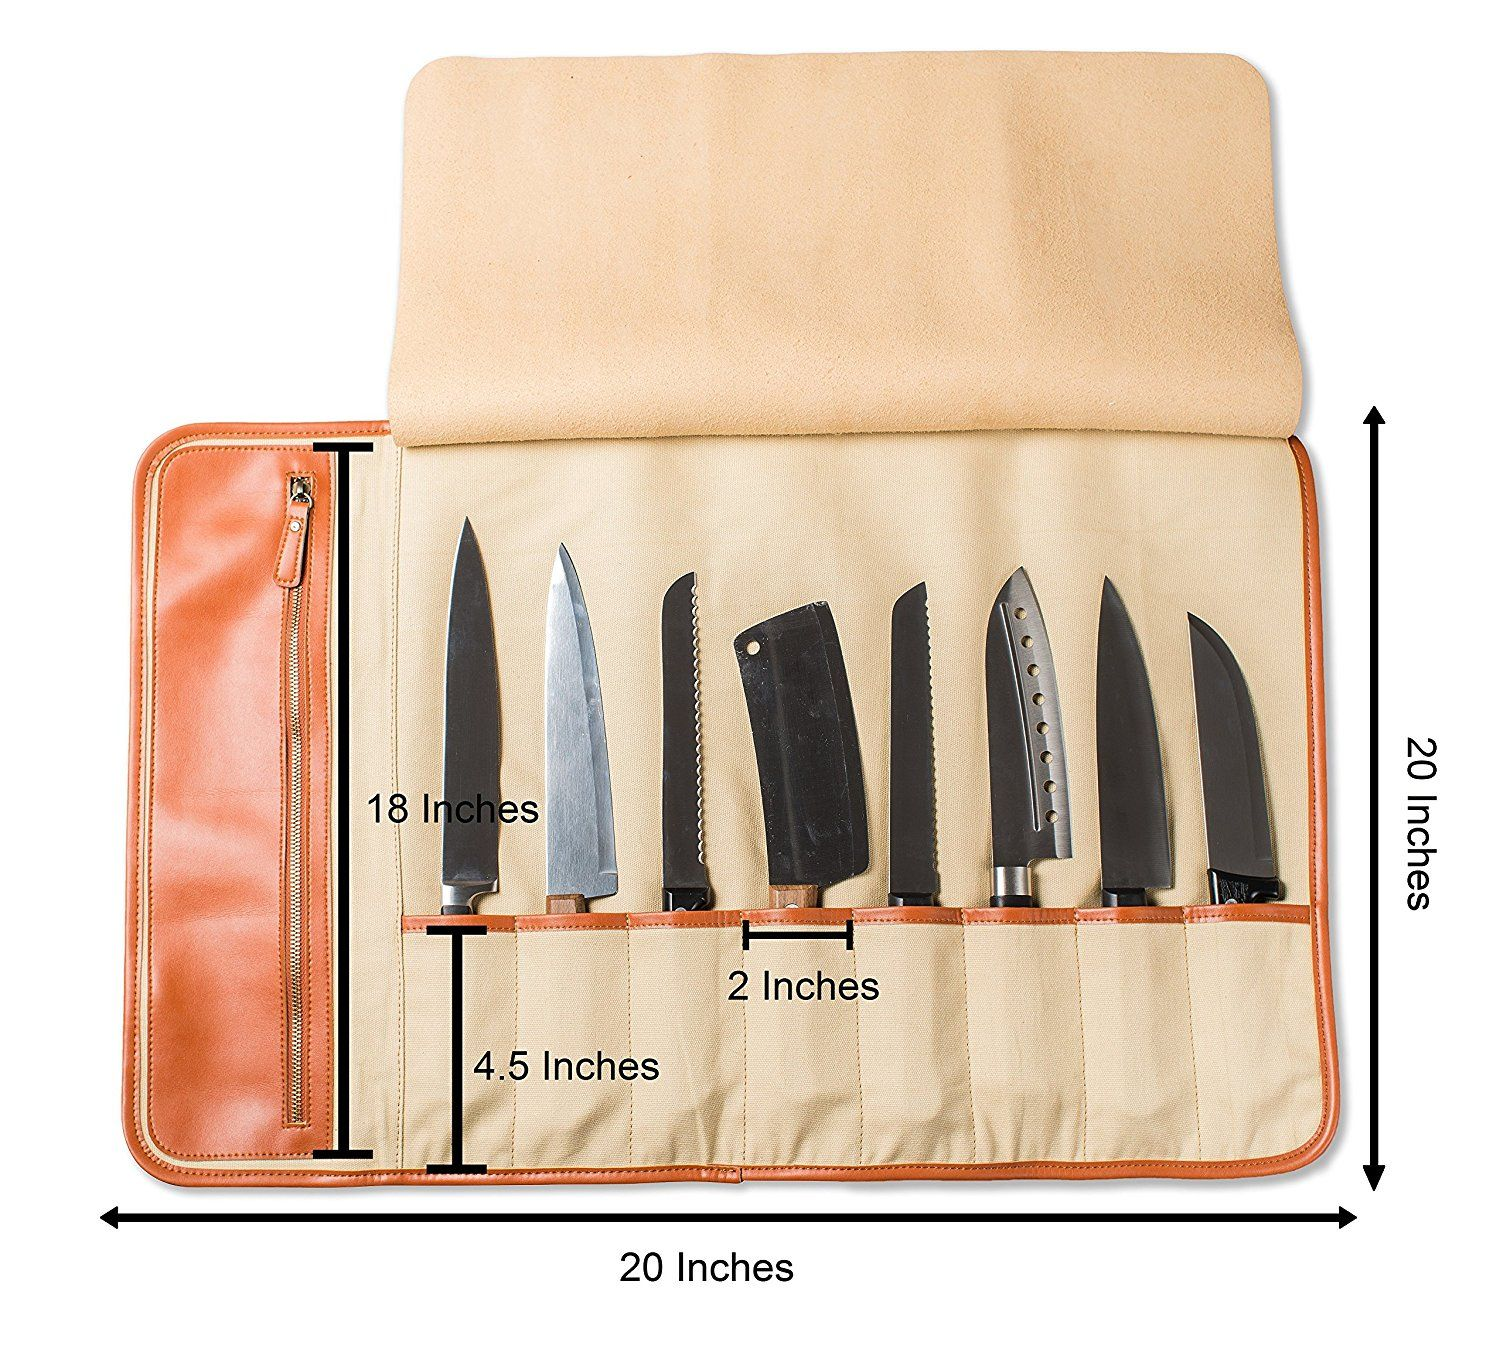 amazon com everpride chef s knife roll up storage bag 8 pocket amazon com everpride chef s knife roll up storage bag 8 pocket carrier stores 8 knives plus a zipper for kitchen utensils top quality portable chef